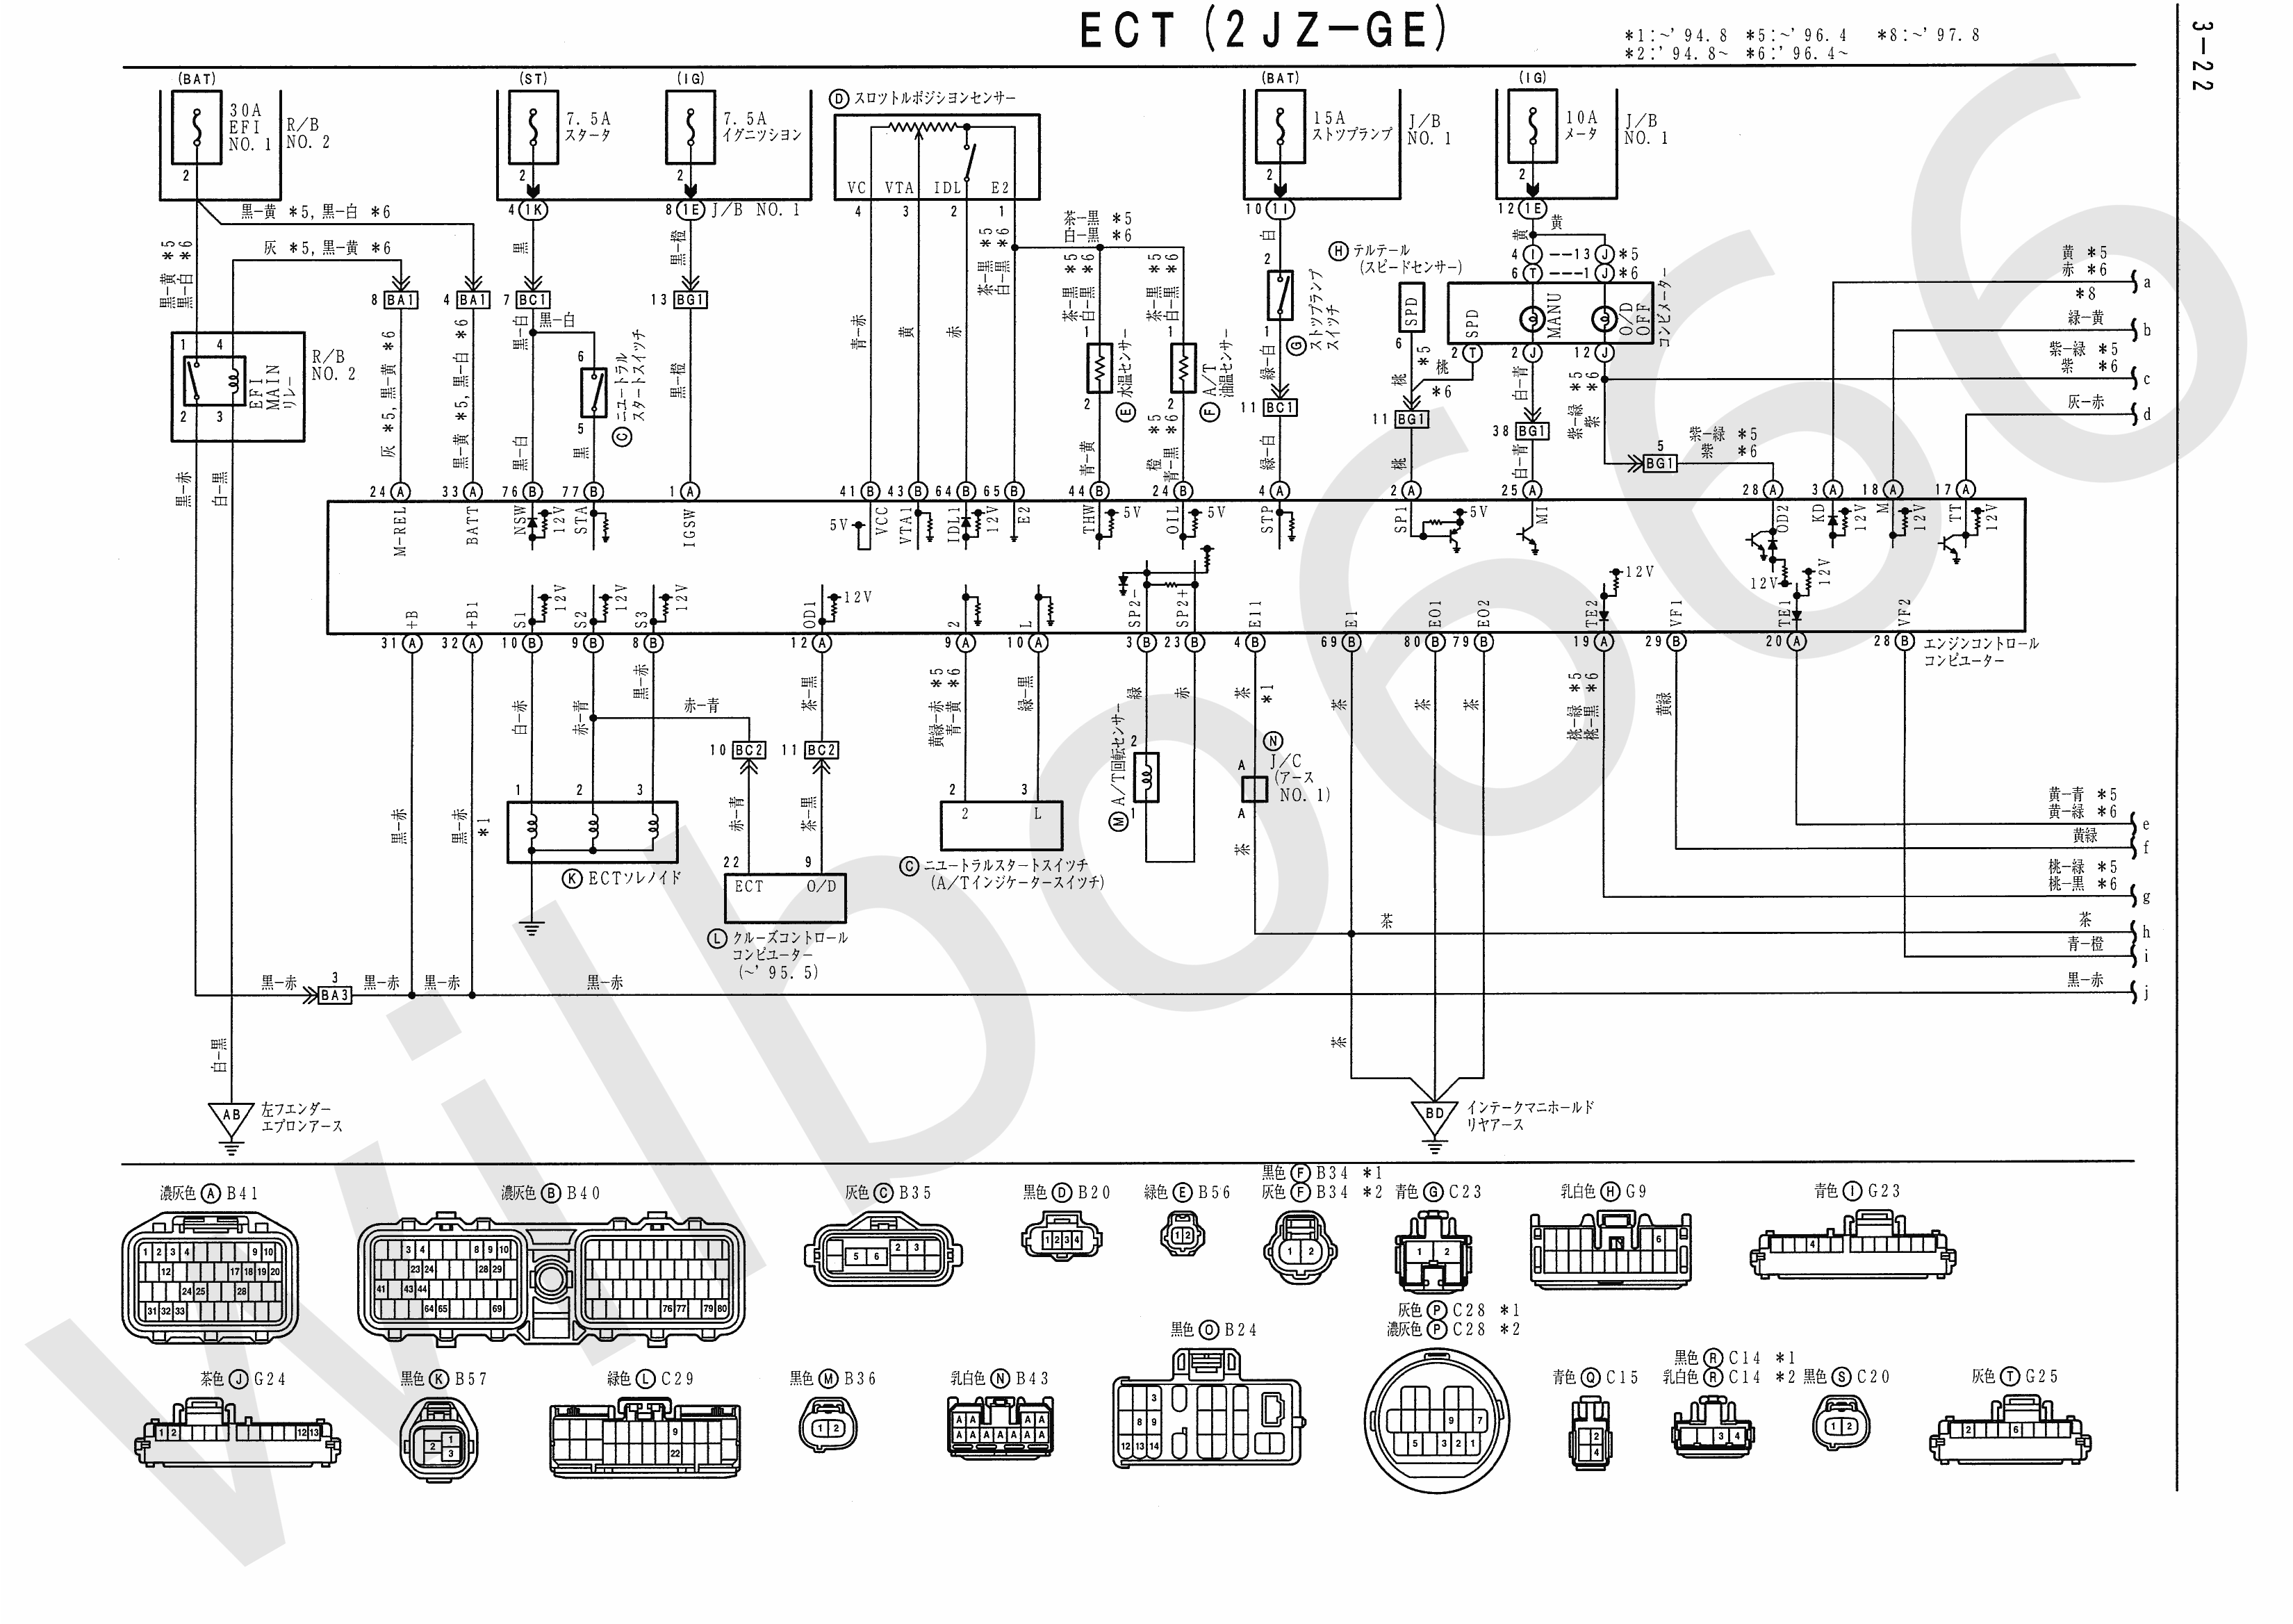 JZA80 Electrical Wiring Diagram 6742505 3 22 wilbo666 2jz ge jza80 supra engine wiring Lexus SC300 Engine at fashall.co